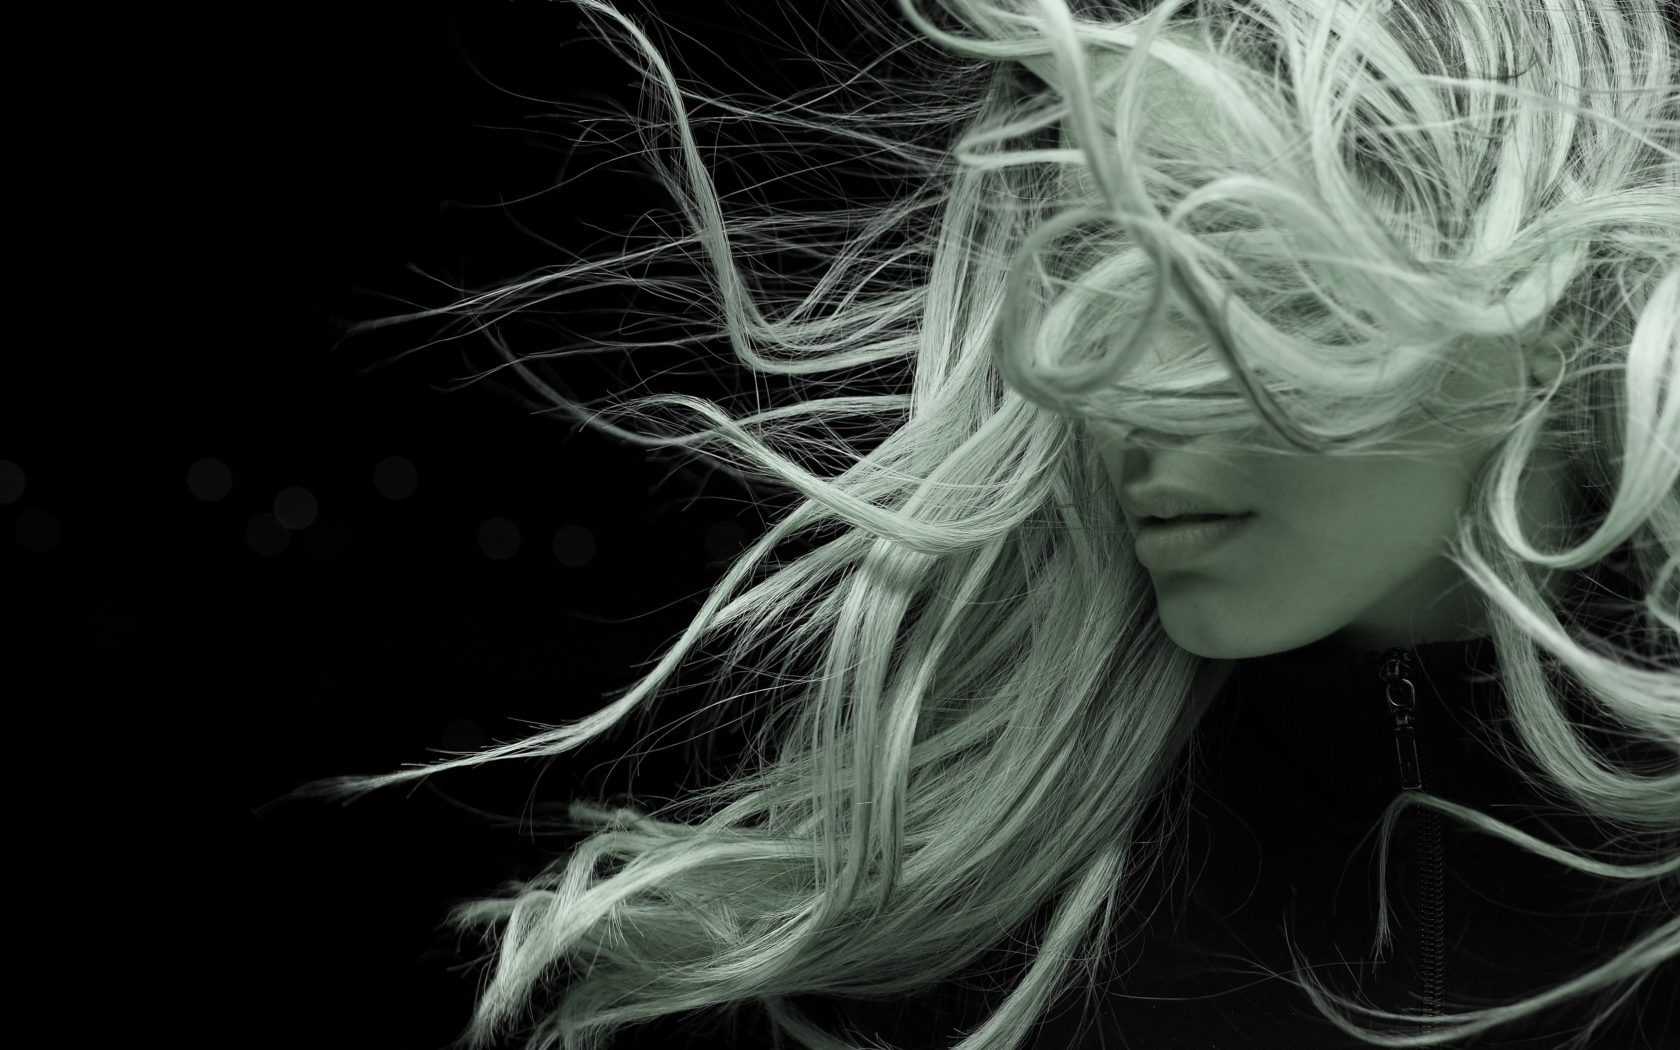 model-hair-wind-exposure-long-hair-1680x1050.jpg